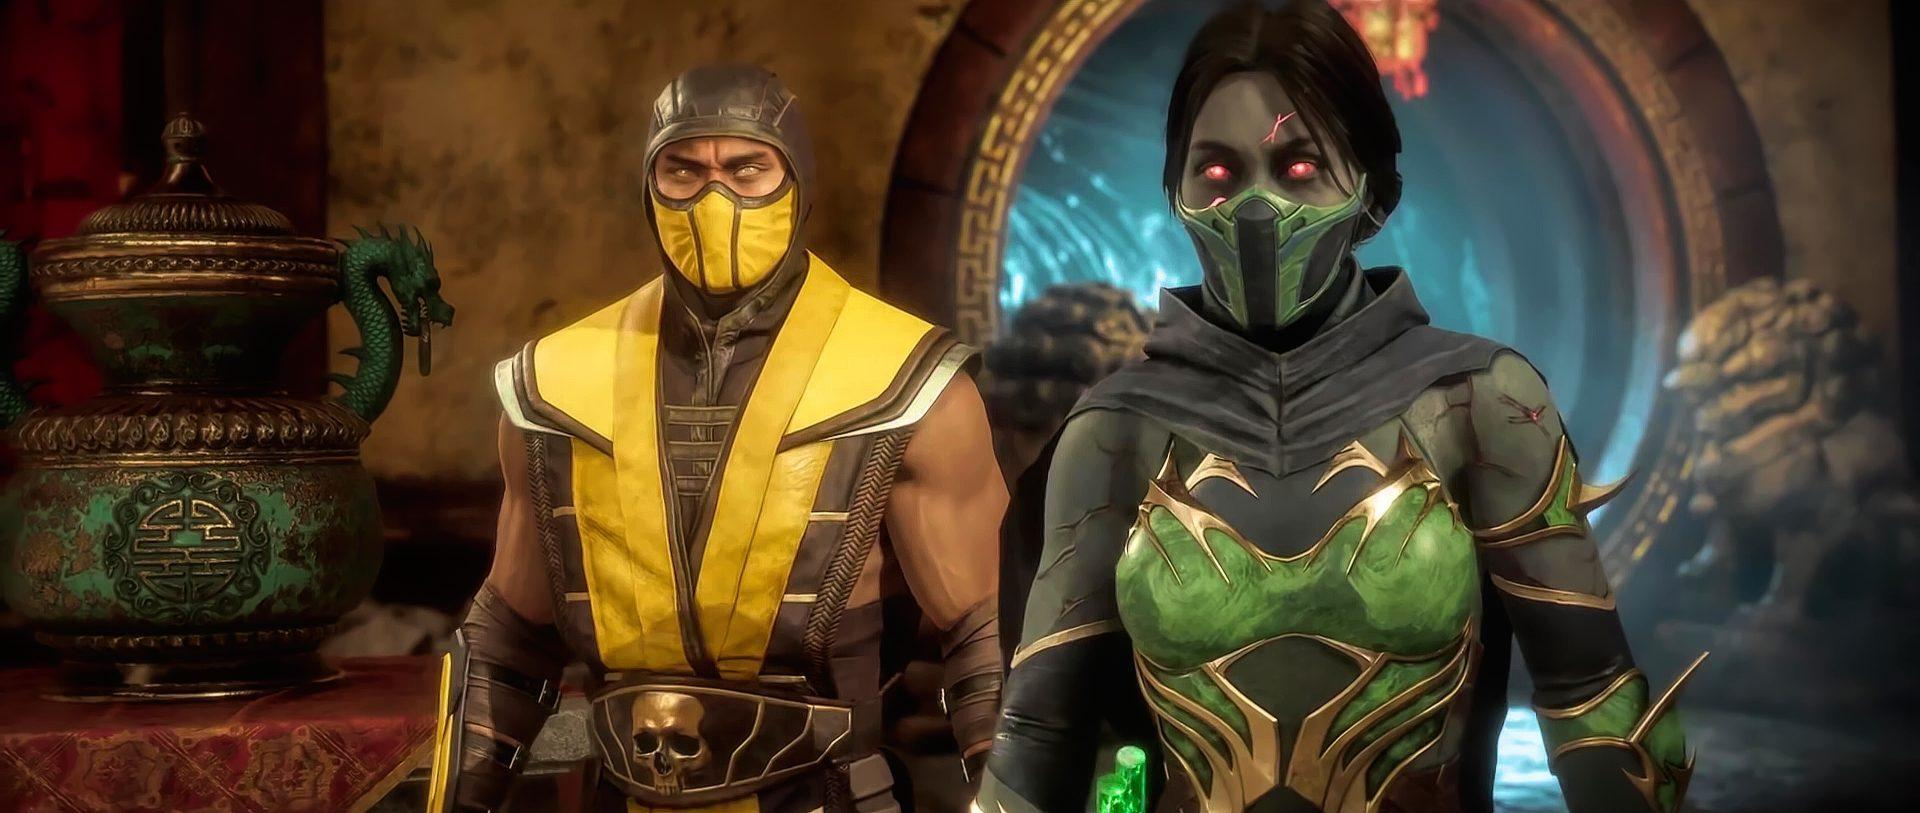 Jade Mortal Kombat Wallpapers Posted By Zoey Cunningham